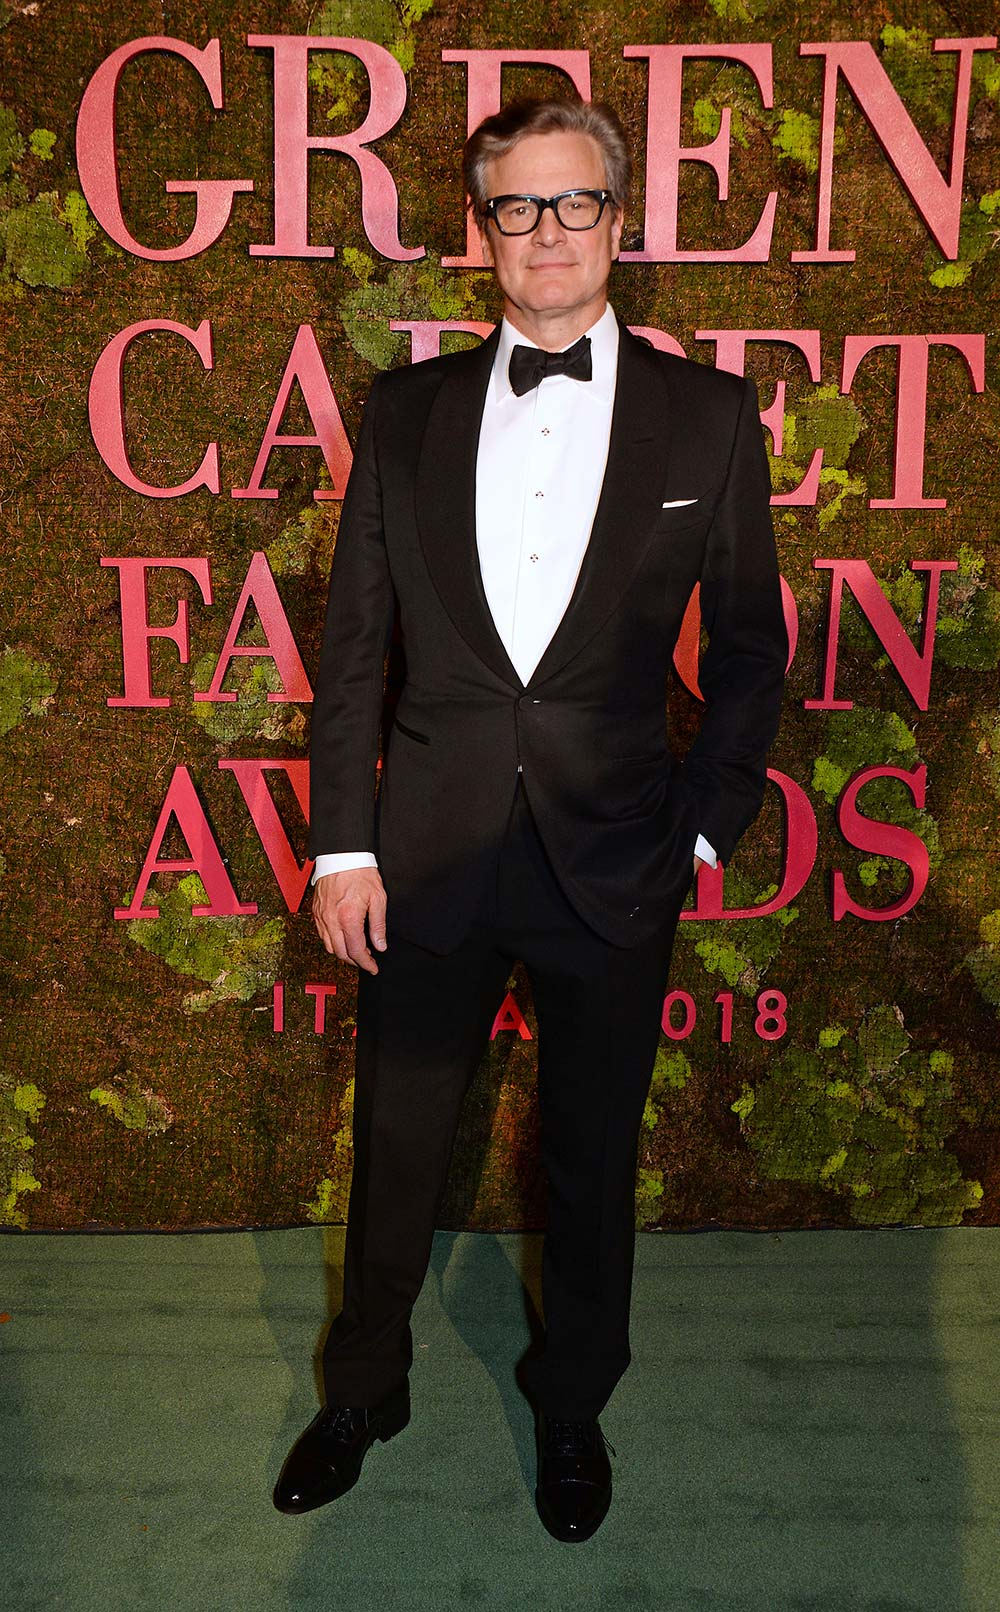 Green Carpet Fashion Awards 2018 - Colin Firth - Grooming Massimo Serini Team